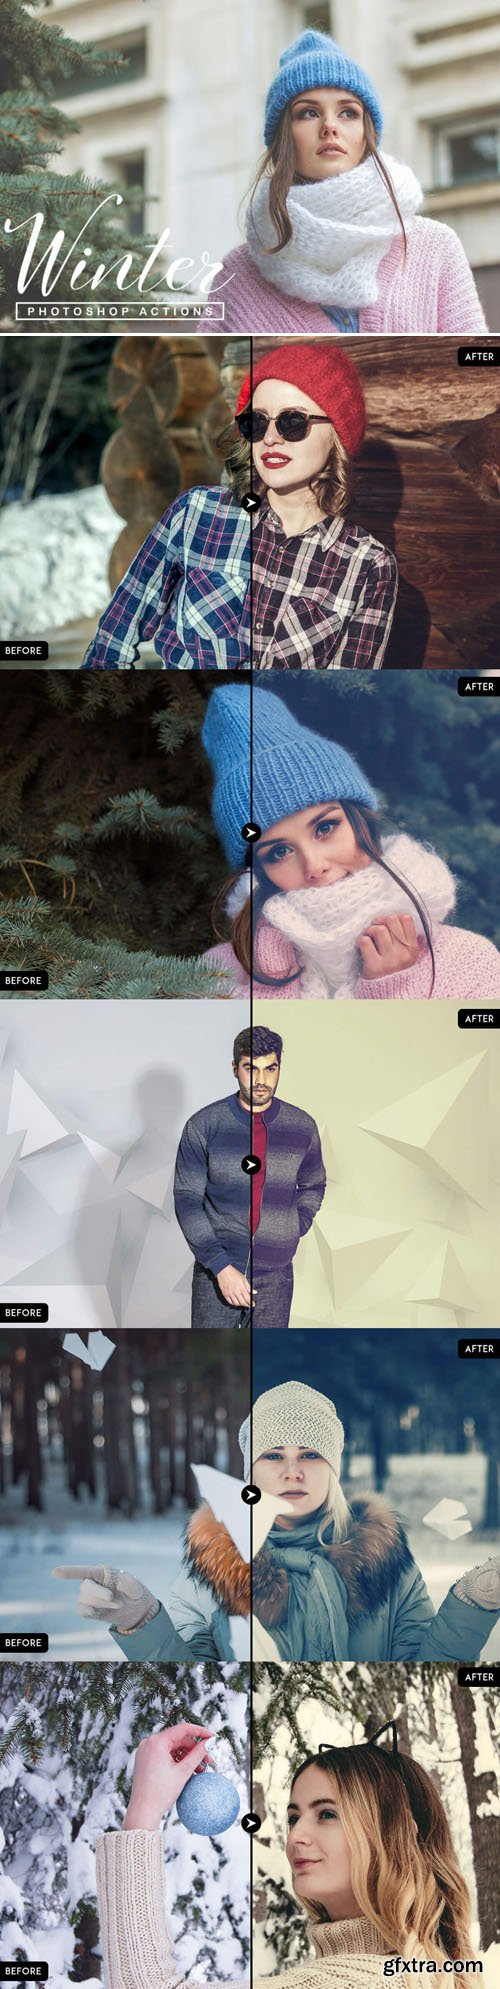 50 Winter Season Photoshop Actions ATN